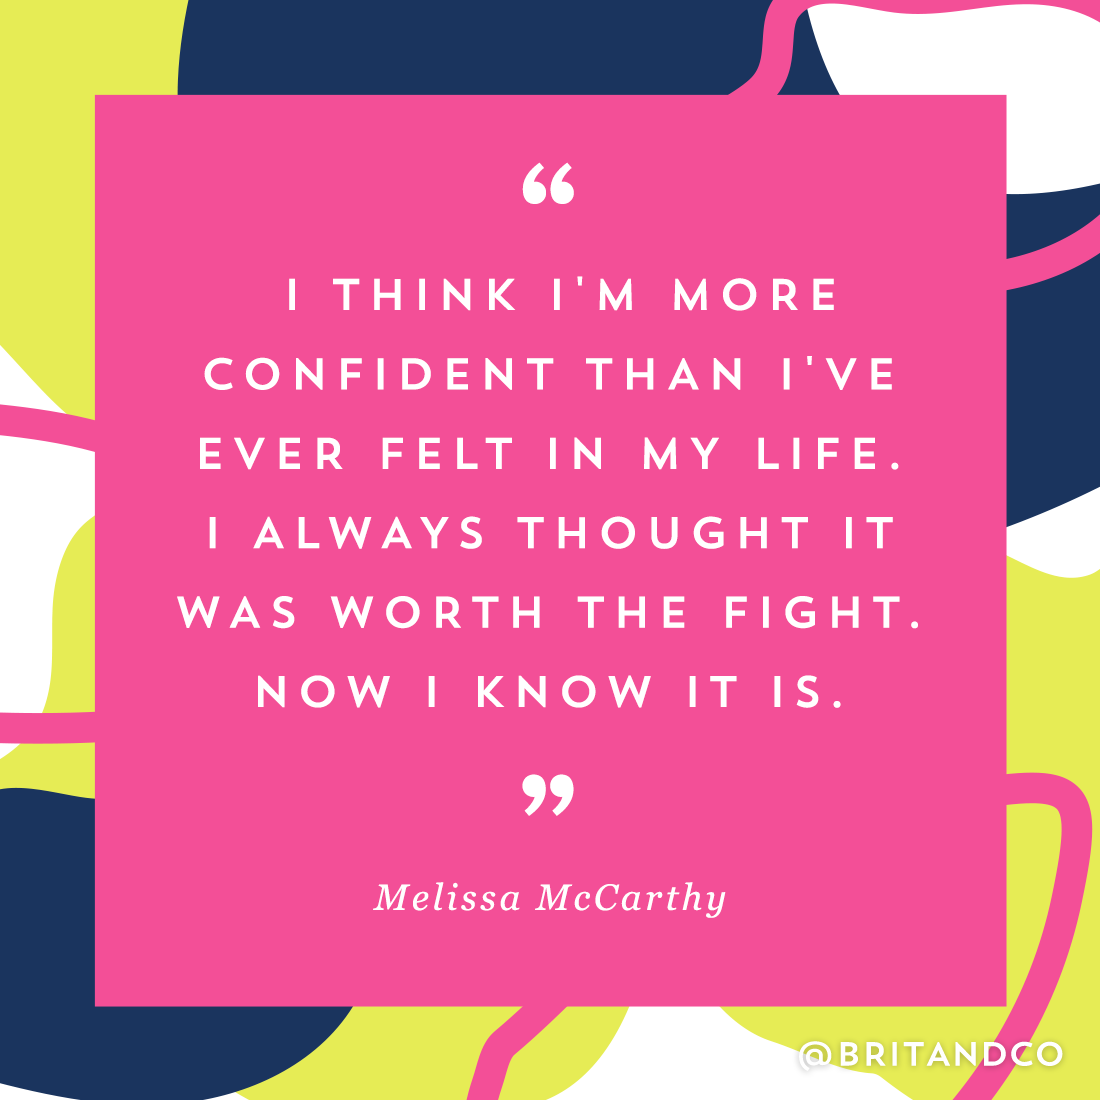 Melissa-McCarthy-Quote-MTV_1100x1100-v4.png